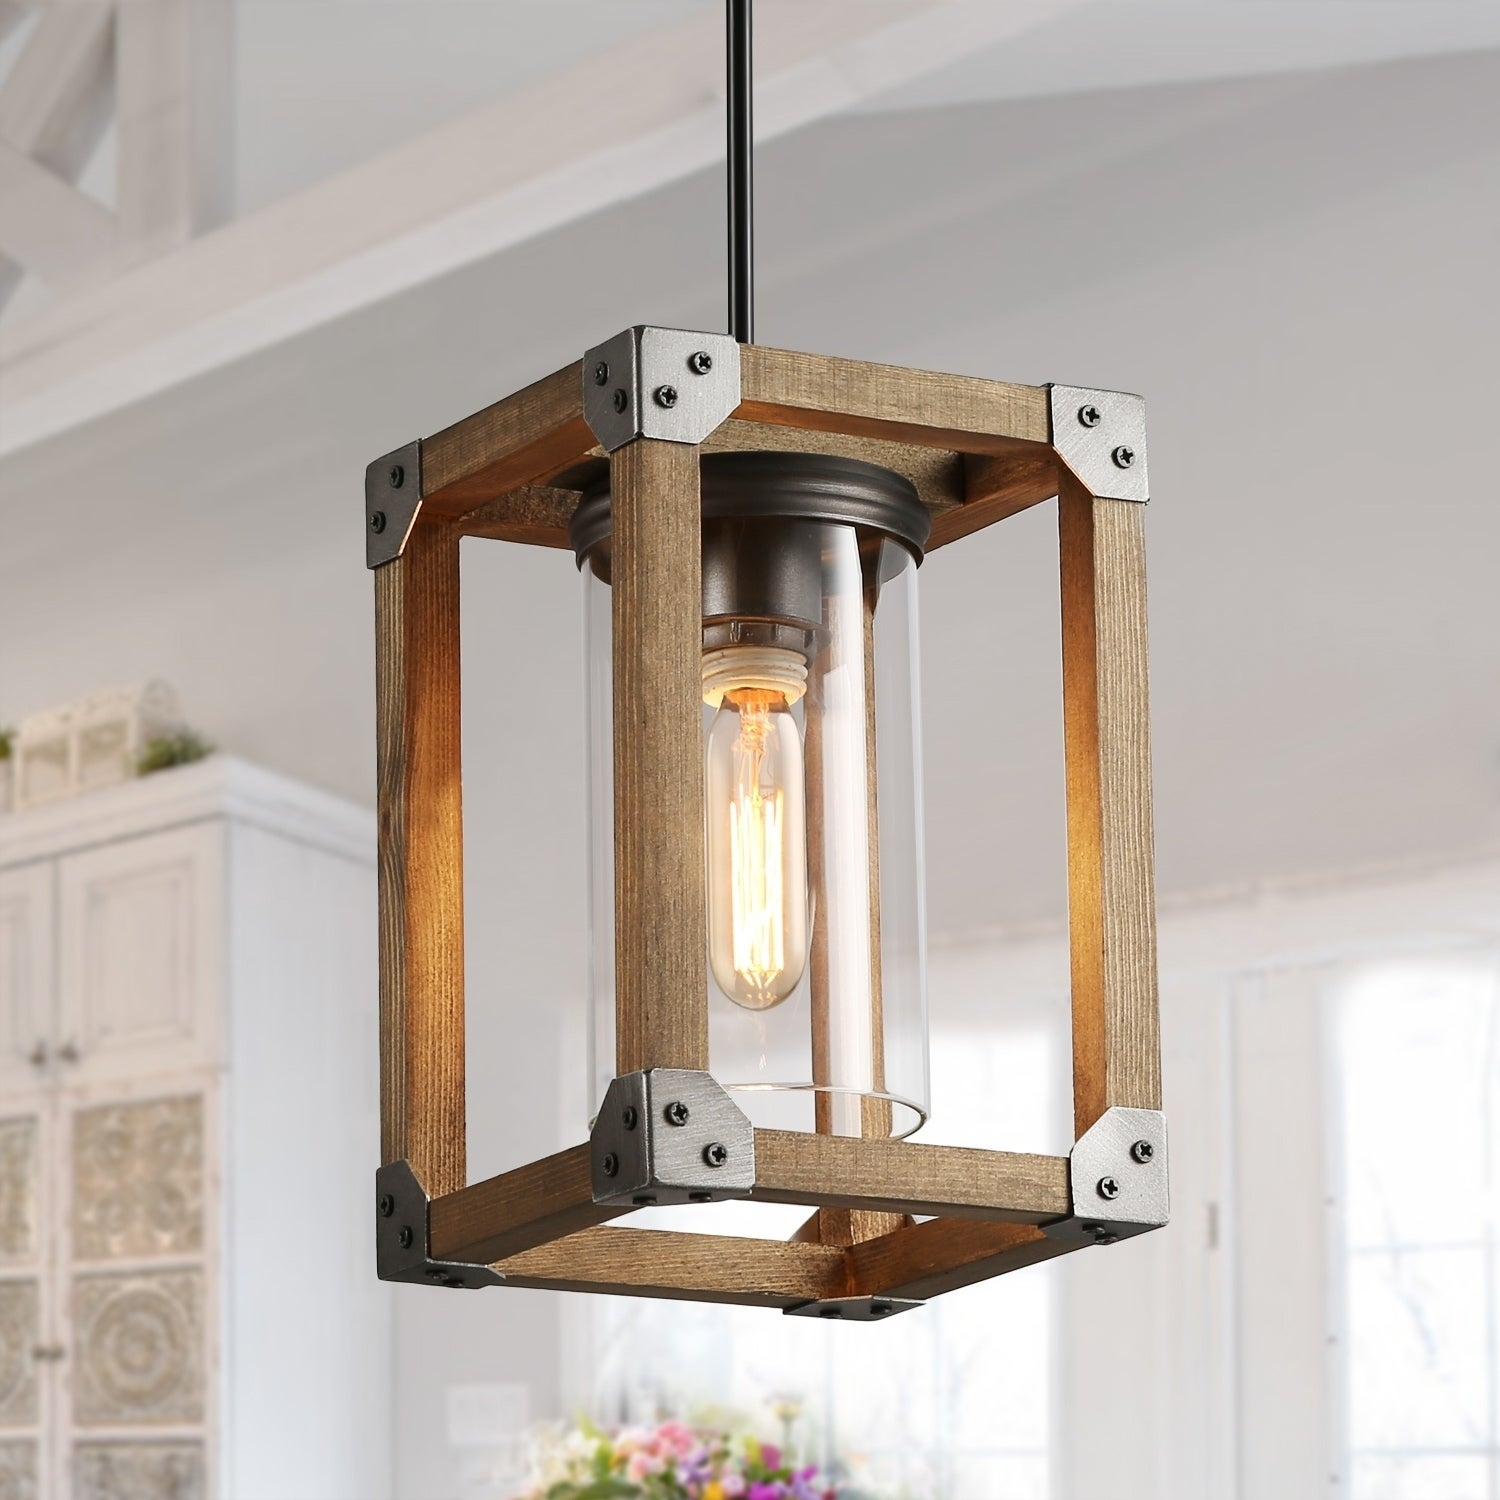 Square Wood Pendant Lighting with Glass Ceiling Light for Kitchen Island -  N/A